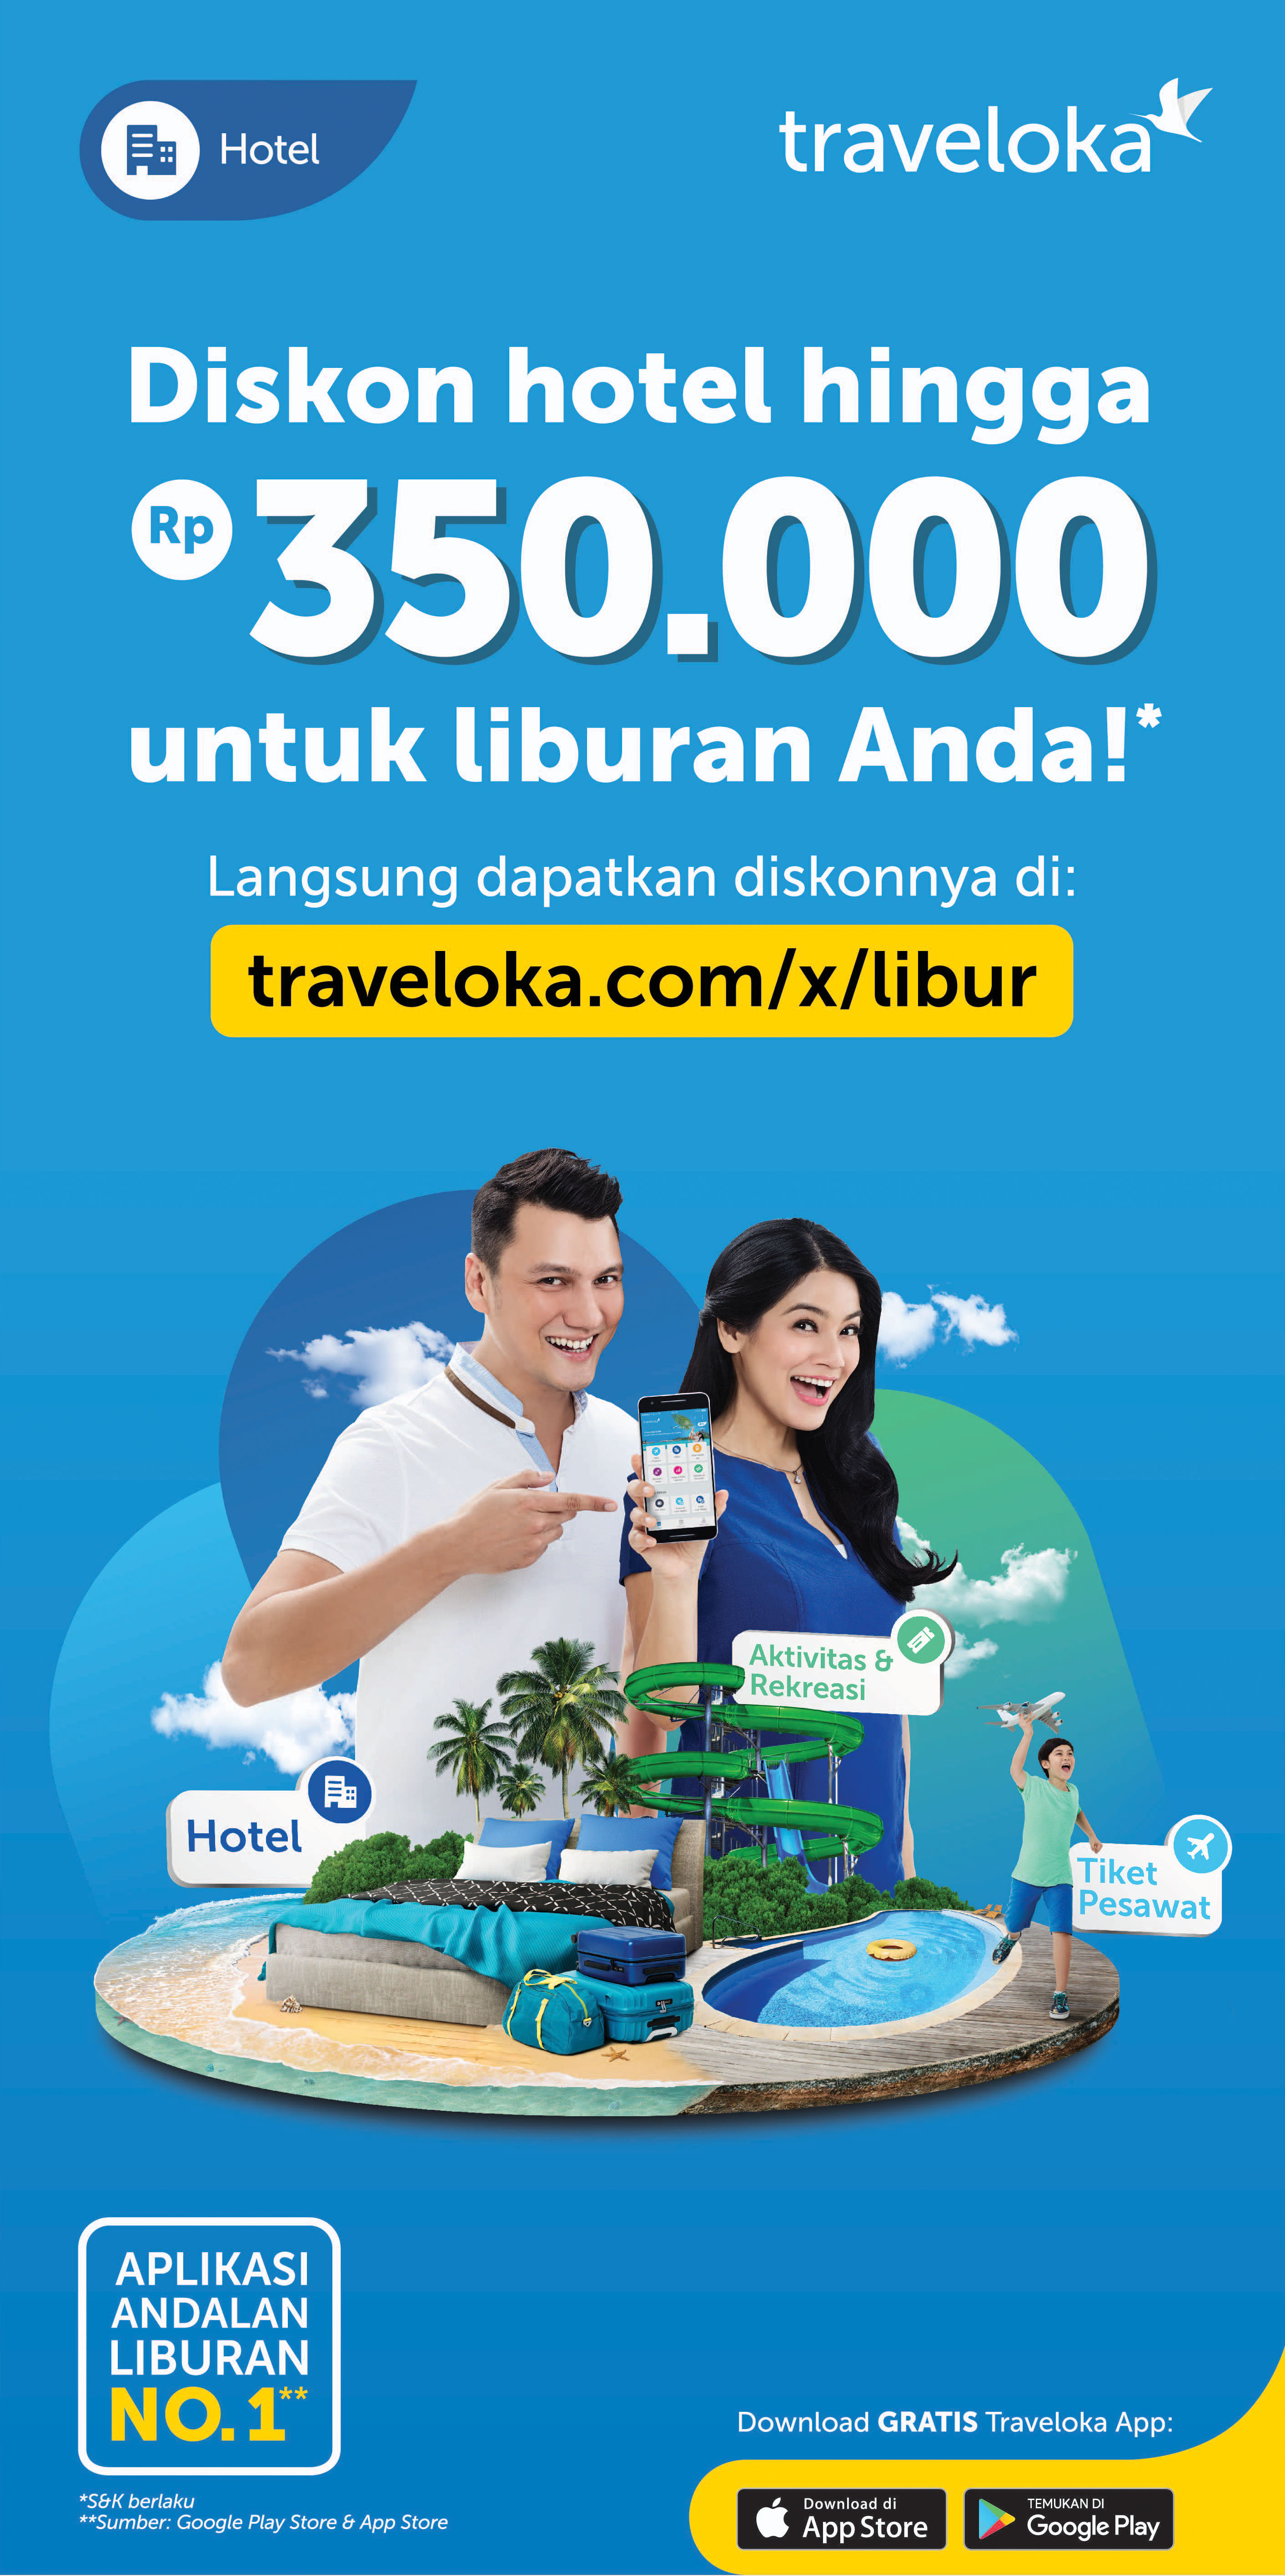 Traveloka_KV-Tika_HOTEL-12_FA_FINAL_P-01-copy.jpg